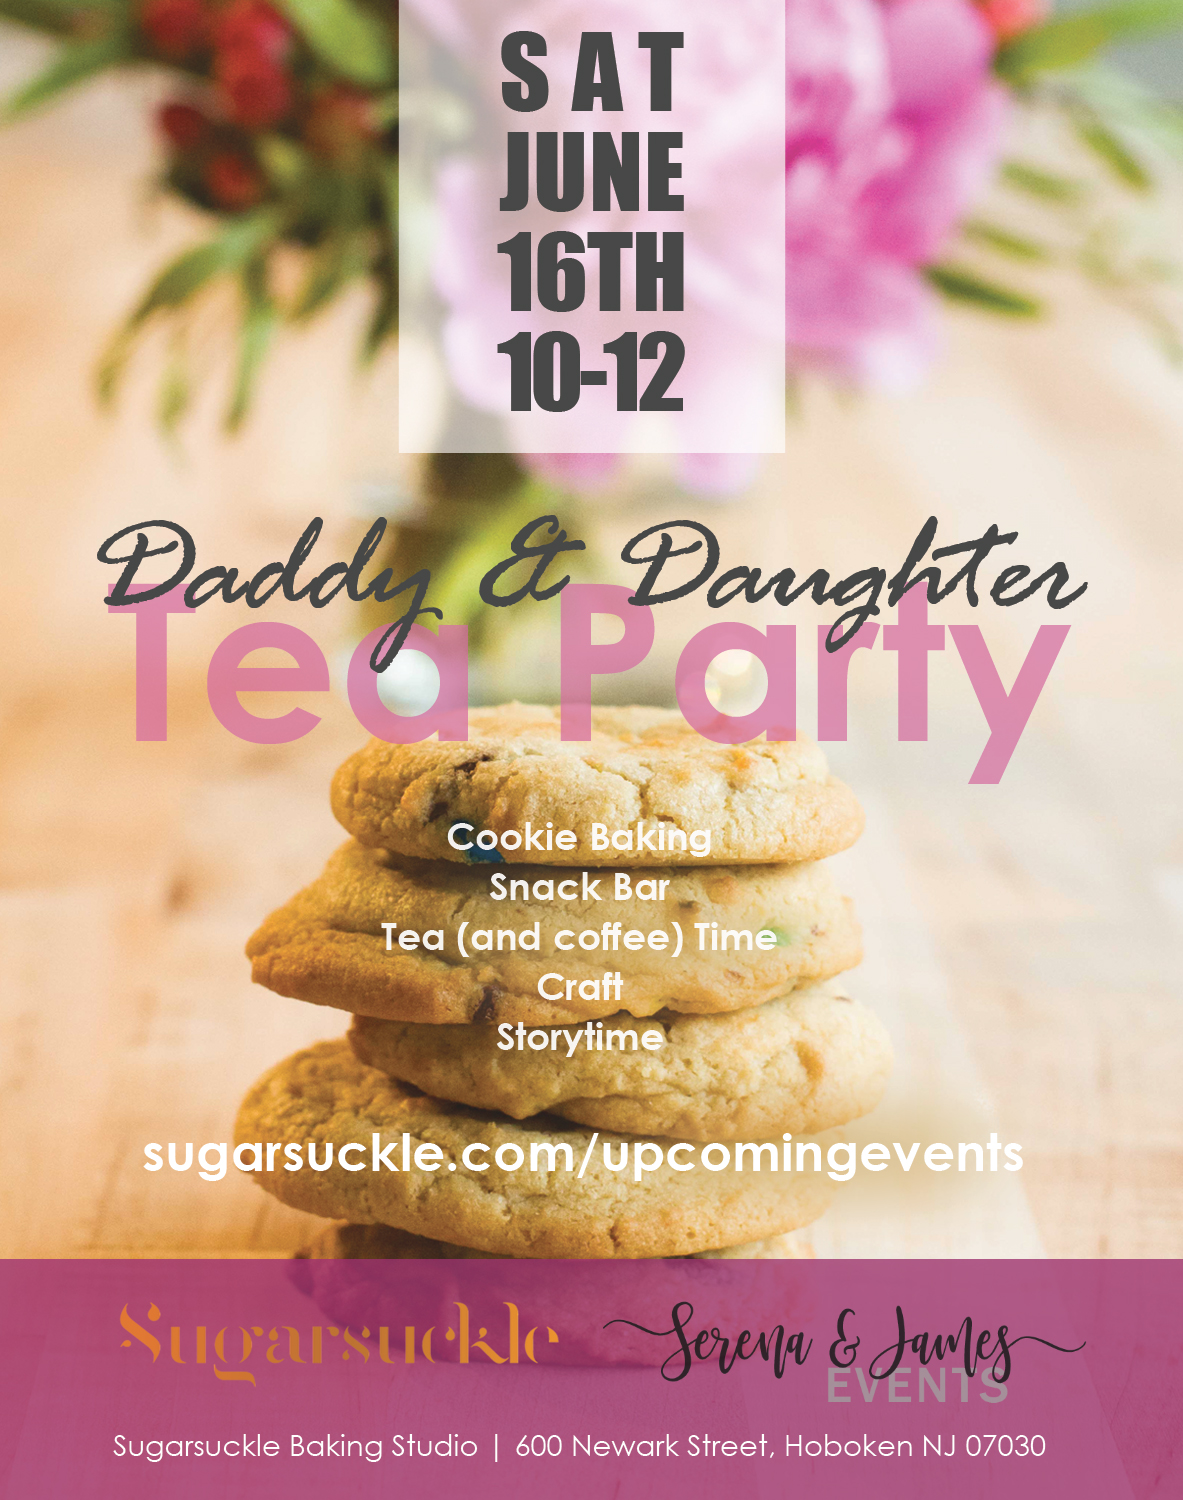 Daddy & Daughter Tea Party - Sat, Jun 16 | Sugarsuckle Studio | 10:00-12:00pmCo-hosted with Sugarsuckle, A special tea party to celebrate dads and their daughters. Activities include cookie mixing & baking, making a craft, enjoying story time, snacks, and